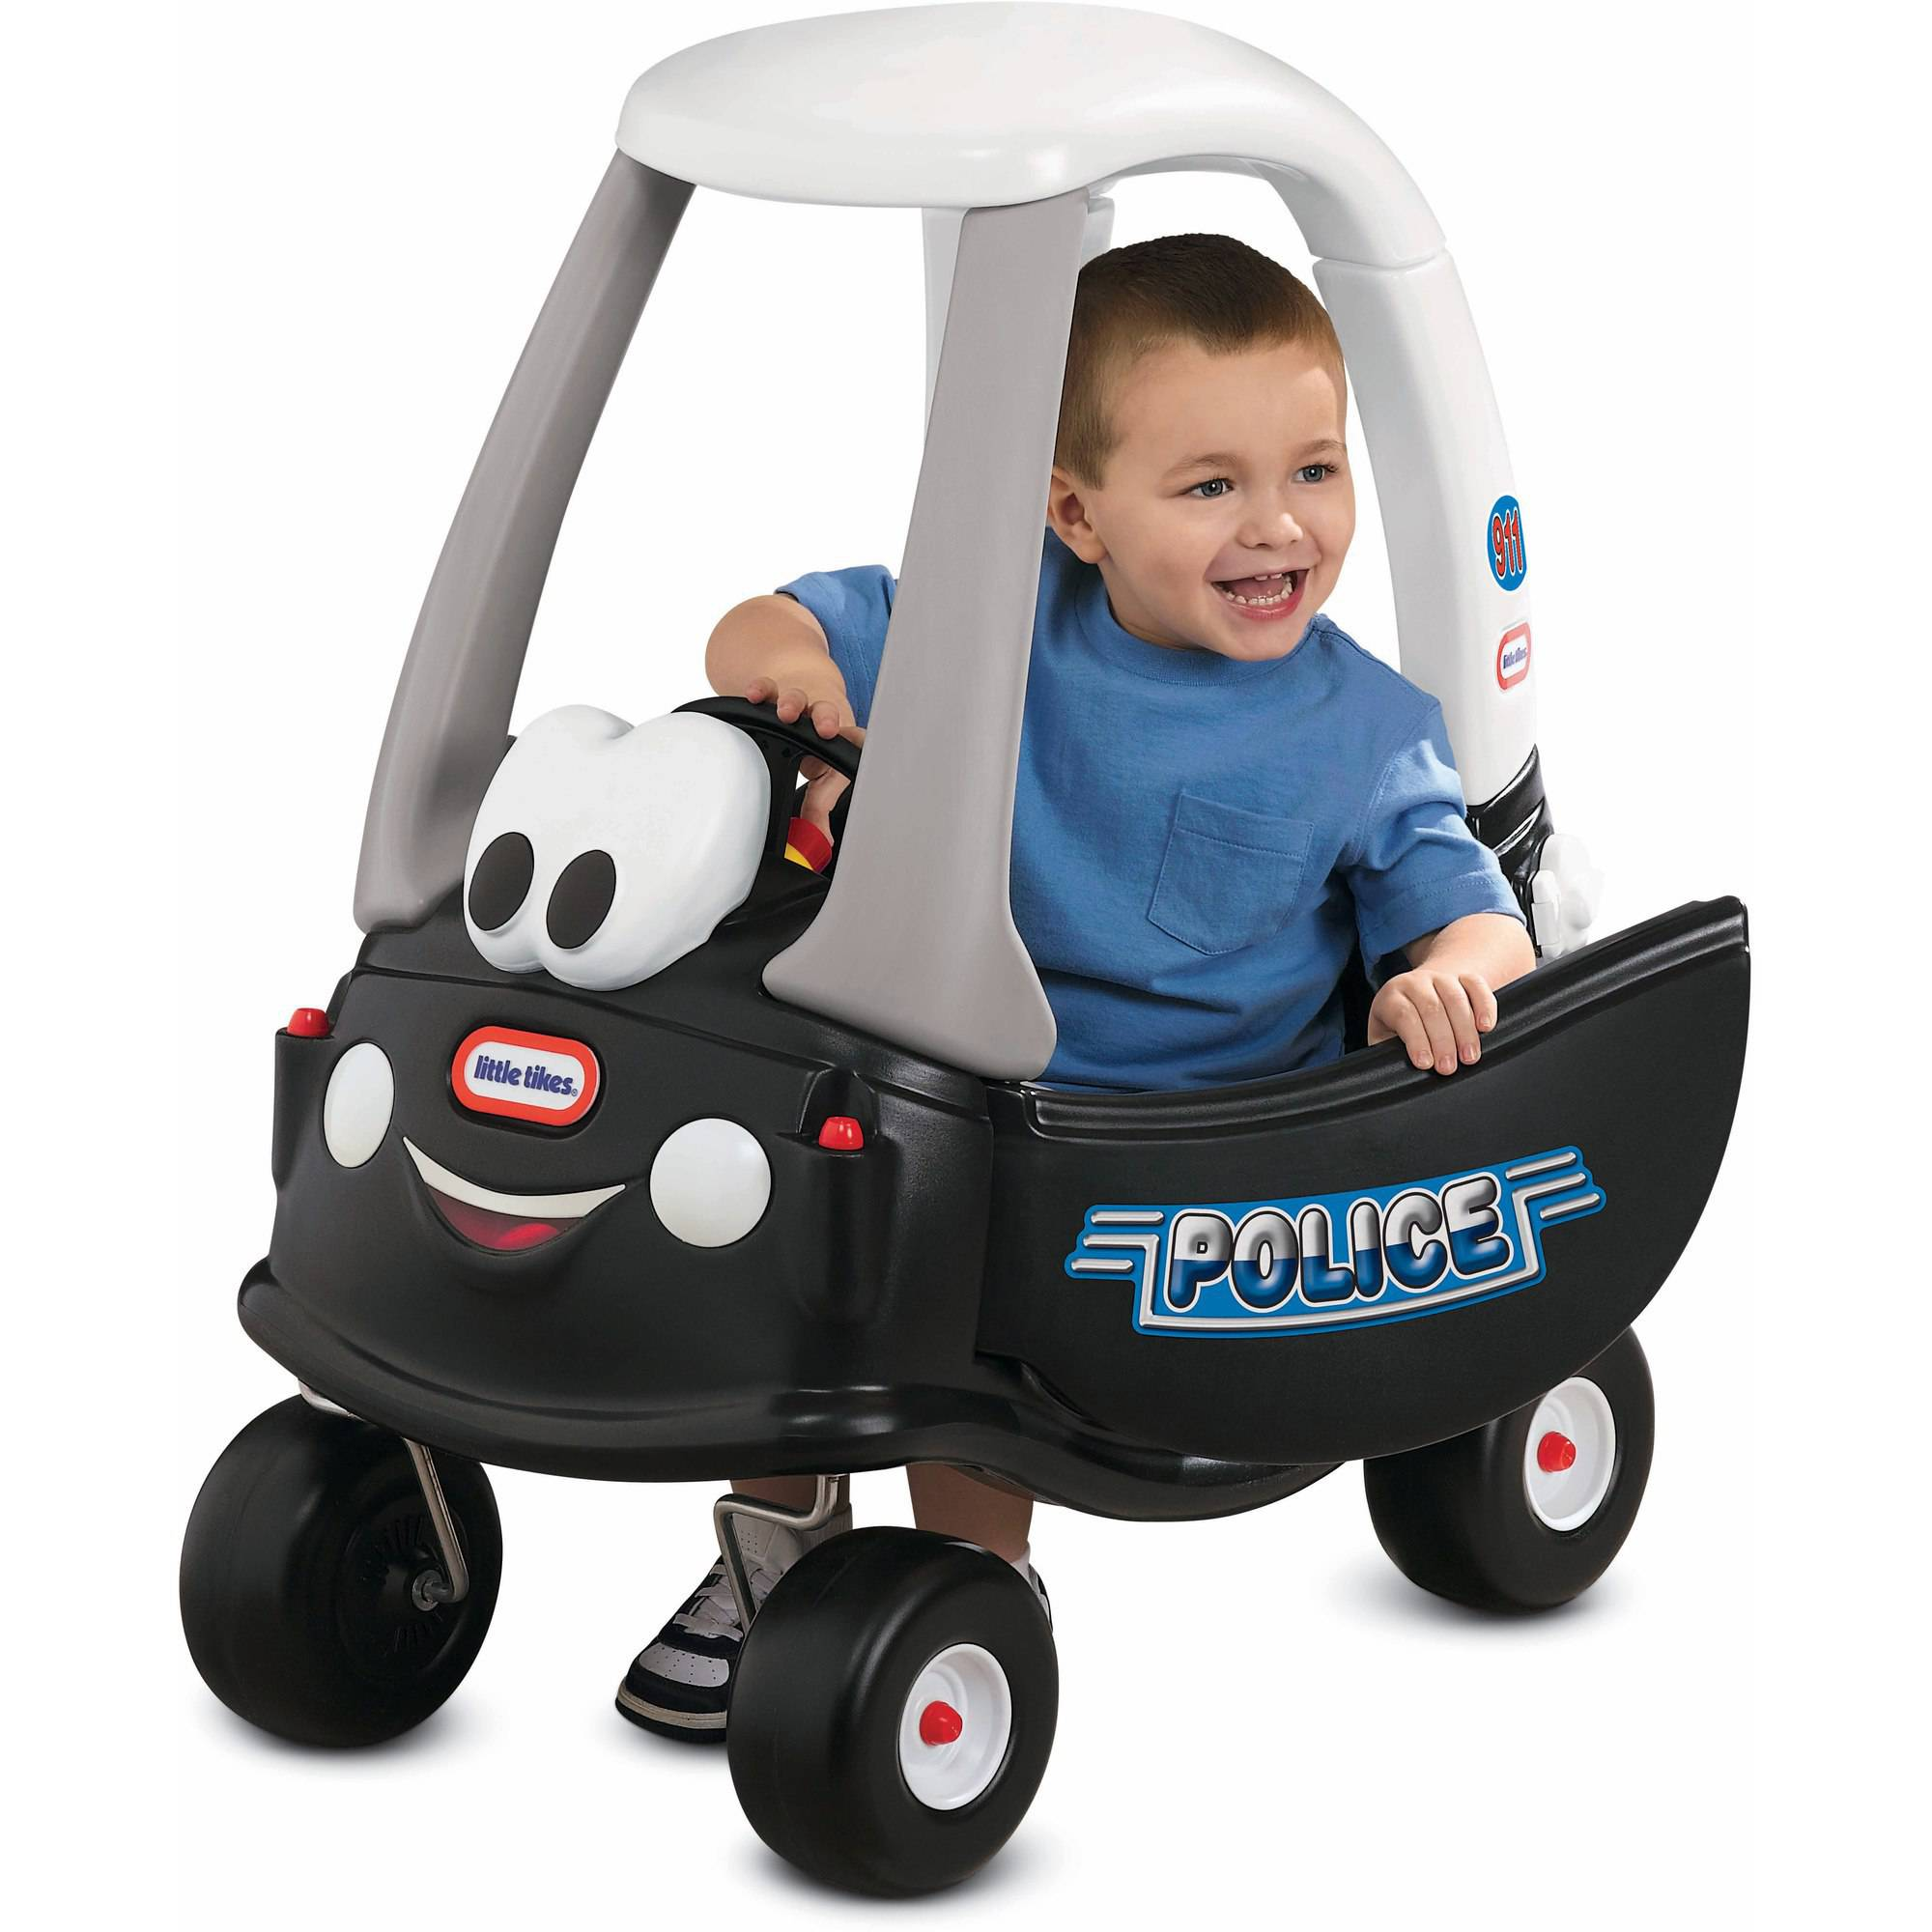 Cozy Coupe 30th Anniversary Tikes Patrol Ride-On